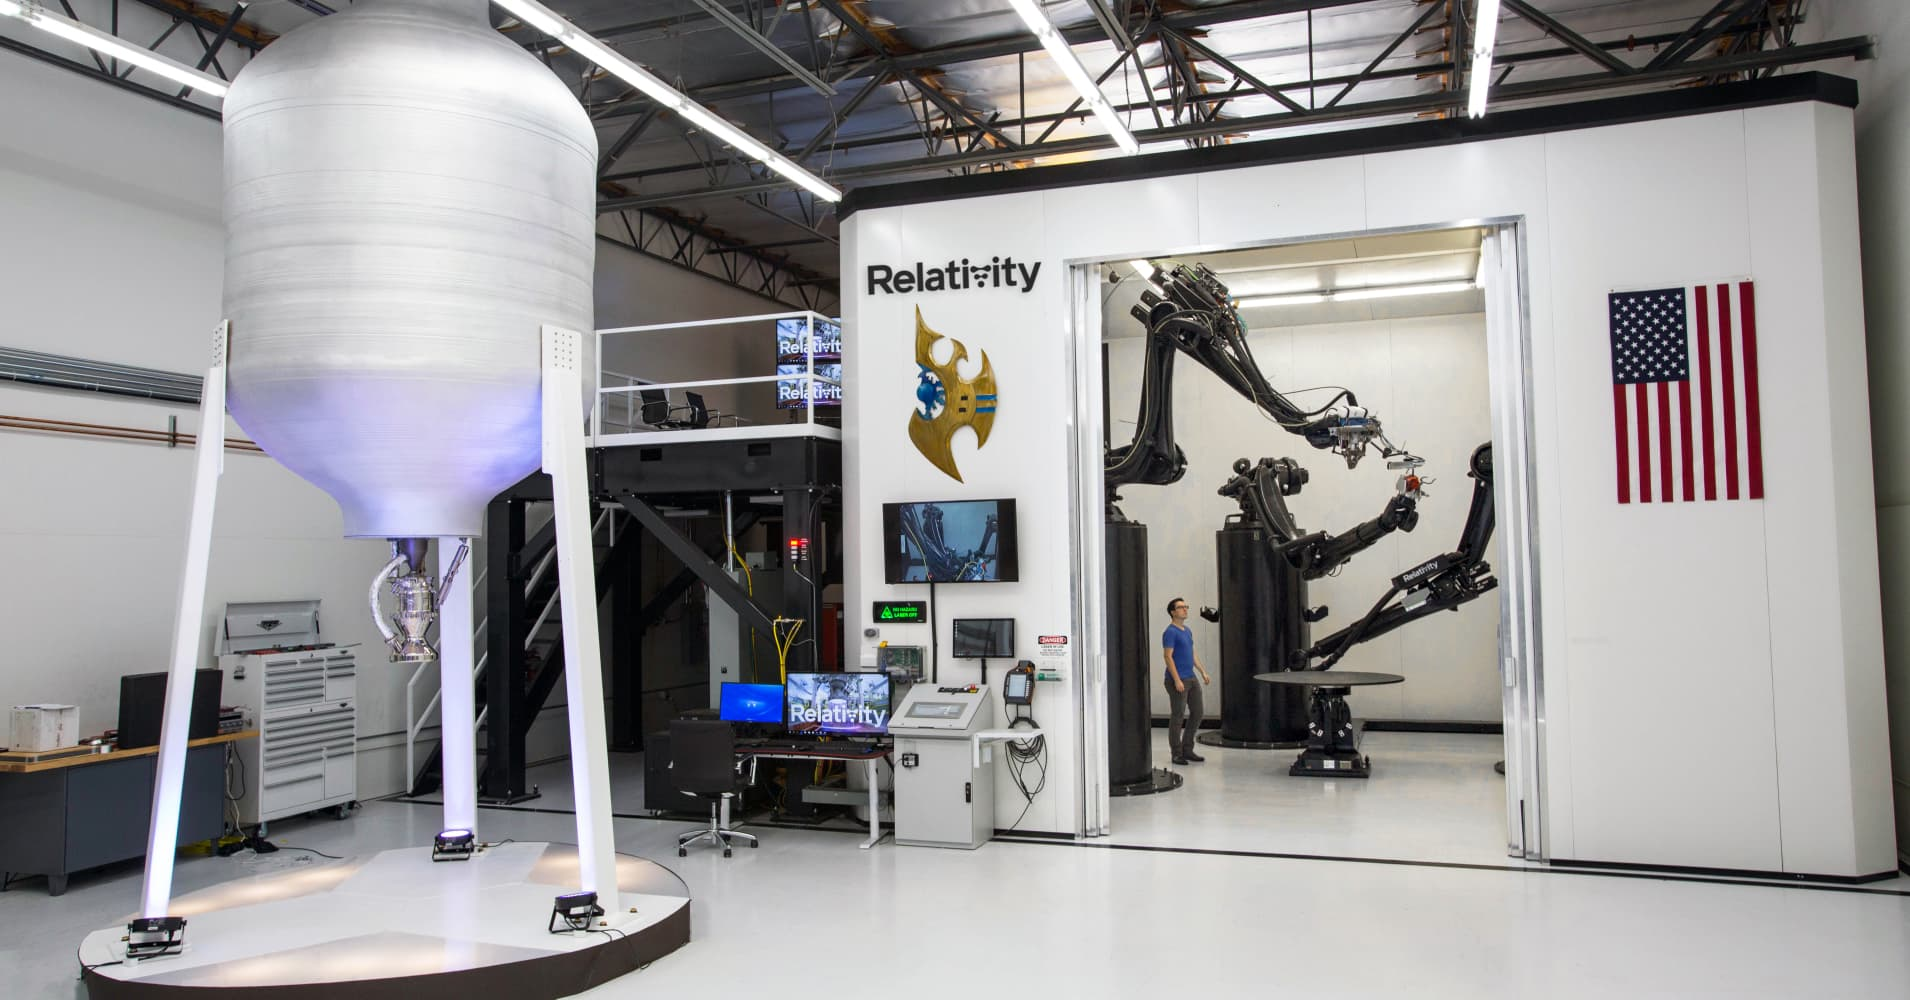 Rocket start-up Relativity quadruples resources in a year, adds former SpaceX leaders